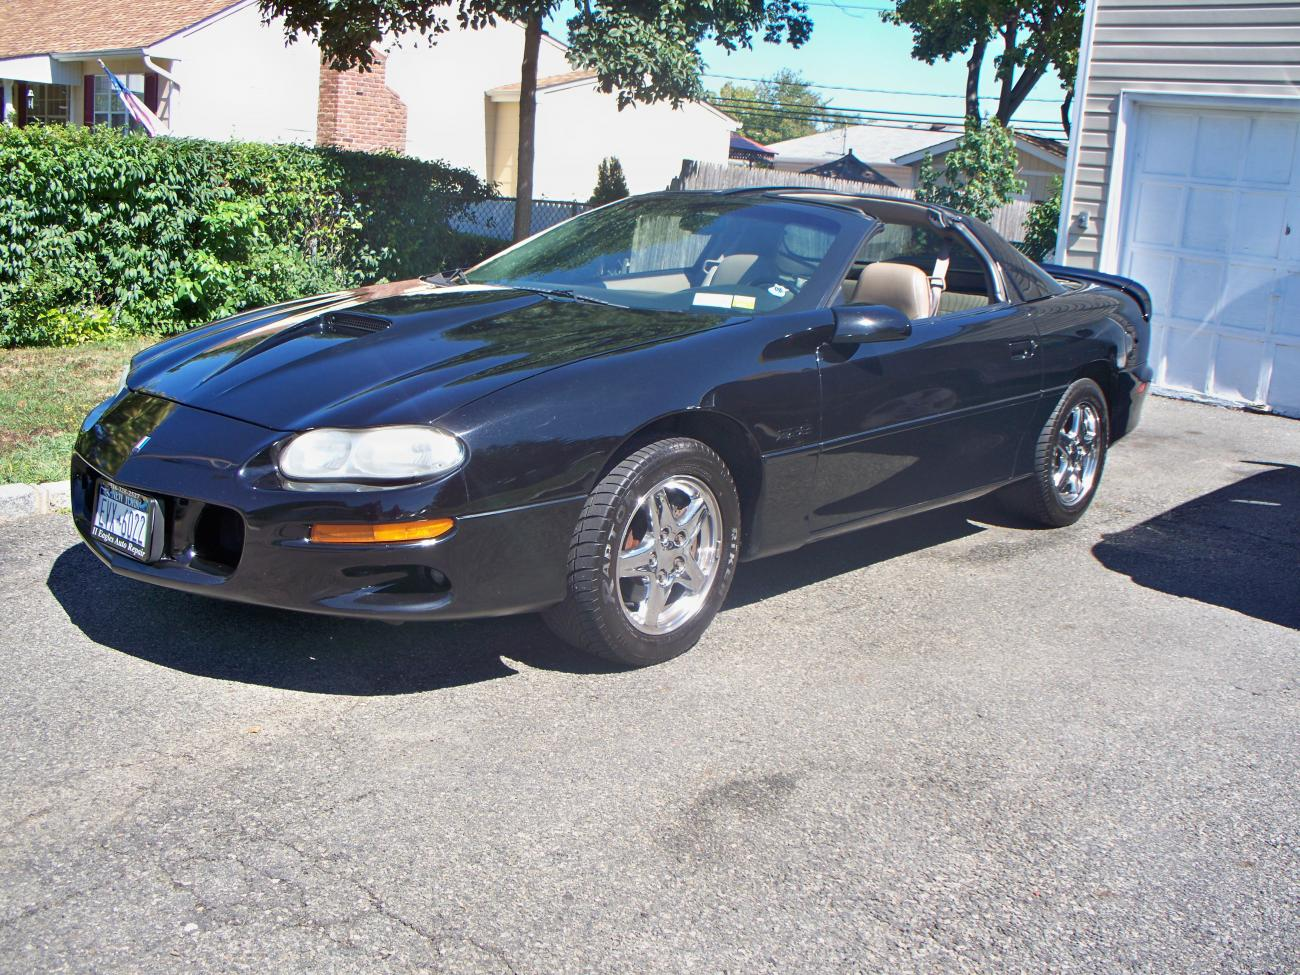 1998 camaro z28 for sale camaro5 chevy camaro forum camaro zl1 ss and v6 forums. Black Bedroom Furniture Sets. Home Design Ideas